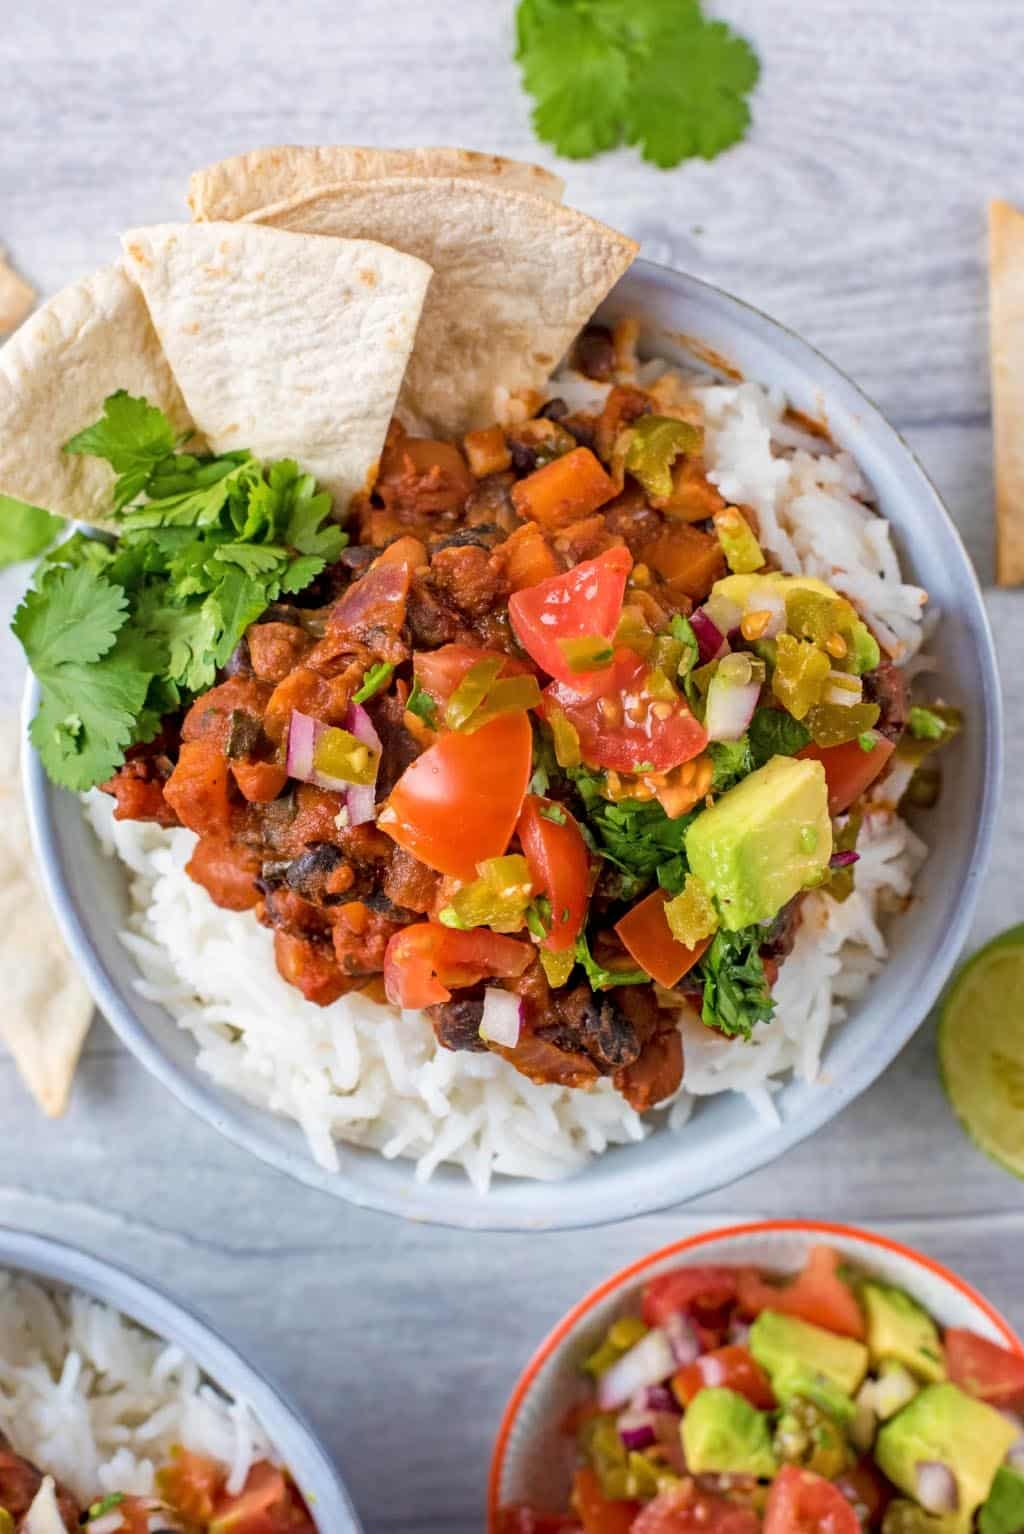 Bean Chilli and rice in a bowl topped with avocado salsa